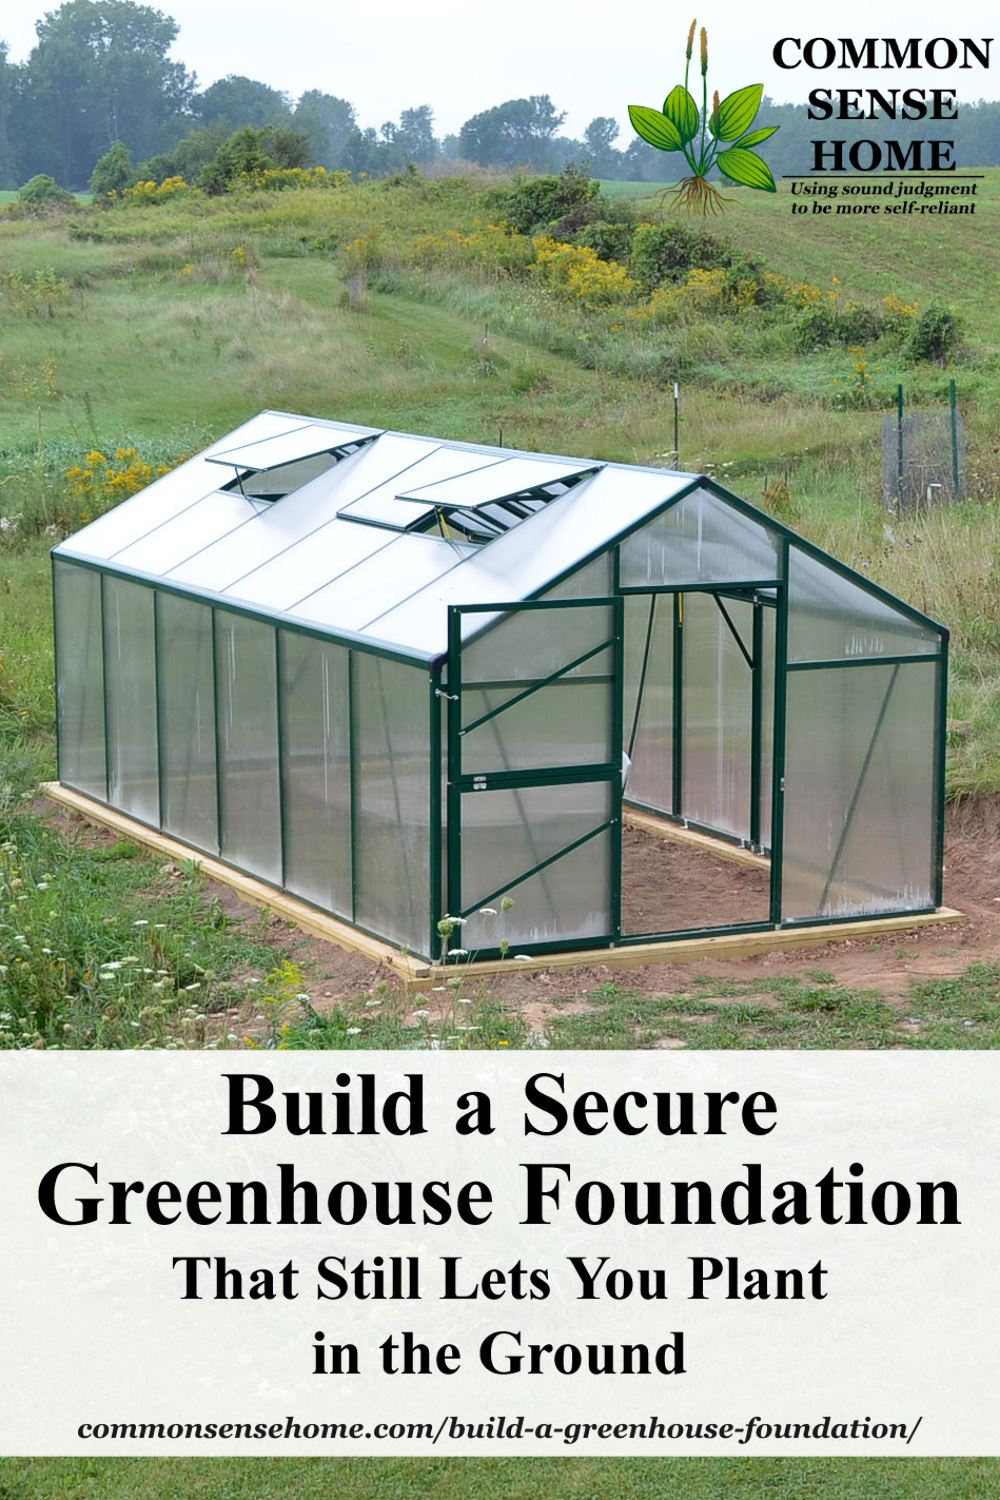 greenhouse garden designs, wood greenhouse plans, easy greenhouse plans, big greenhouse plans, homemade greenhouse plans, attached greenhouse plans, small greenhouse plans, solar greenhouse plans, a-frame greenhouse plans, lean to greenhouse plans, greenhouse architecture, pvc greenhouse plans, winter greenhouse plans, hobby greenhouse plans, greenhouse layout, backyard greenhouse plans, greenhouse cabinets, diy greenhouse plans, greenhouse ideas, greenhouse windows, on greenhouse design plans diions